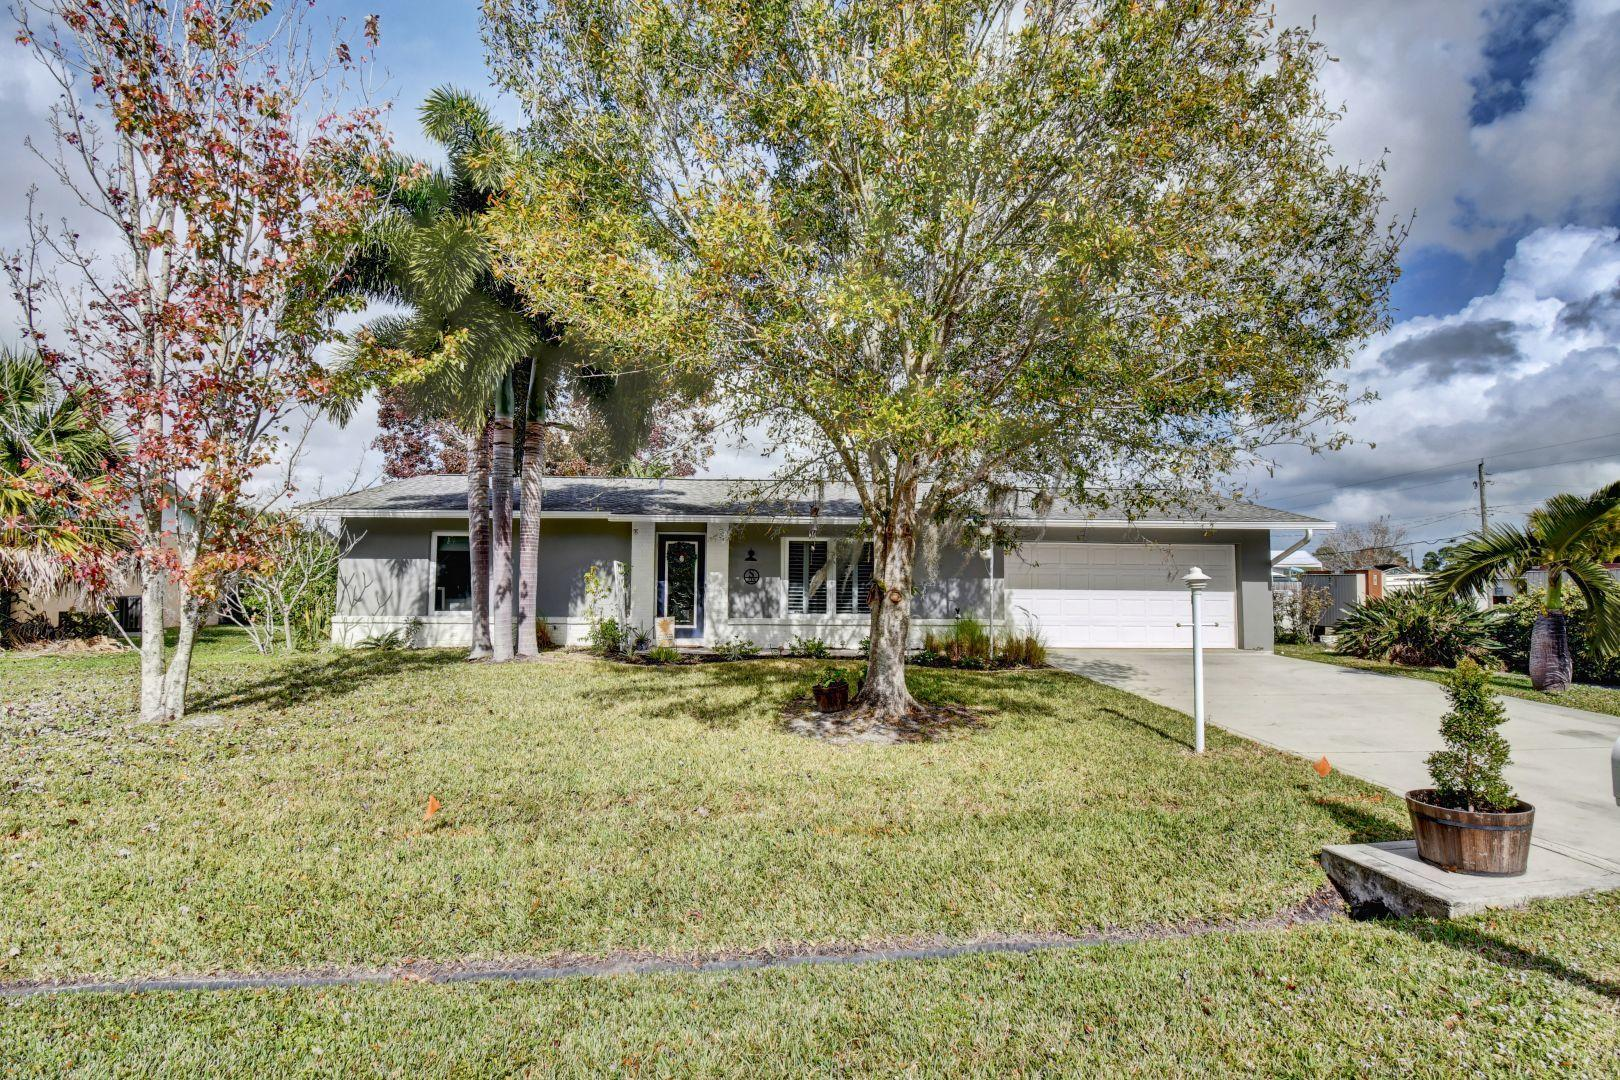 715 SE Fallon Drive 34983 - One of Port Saint Lucie Homes for Sale